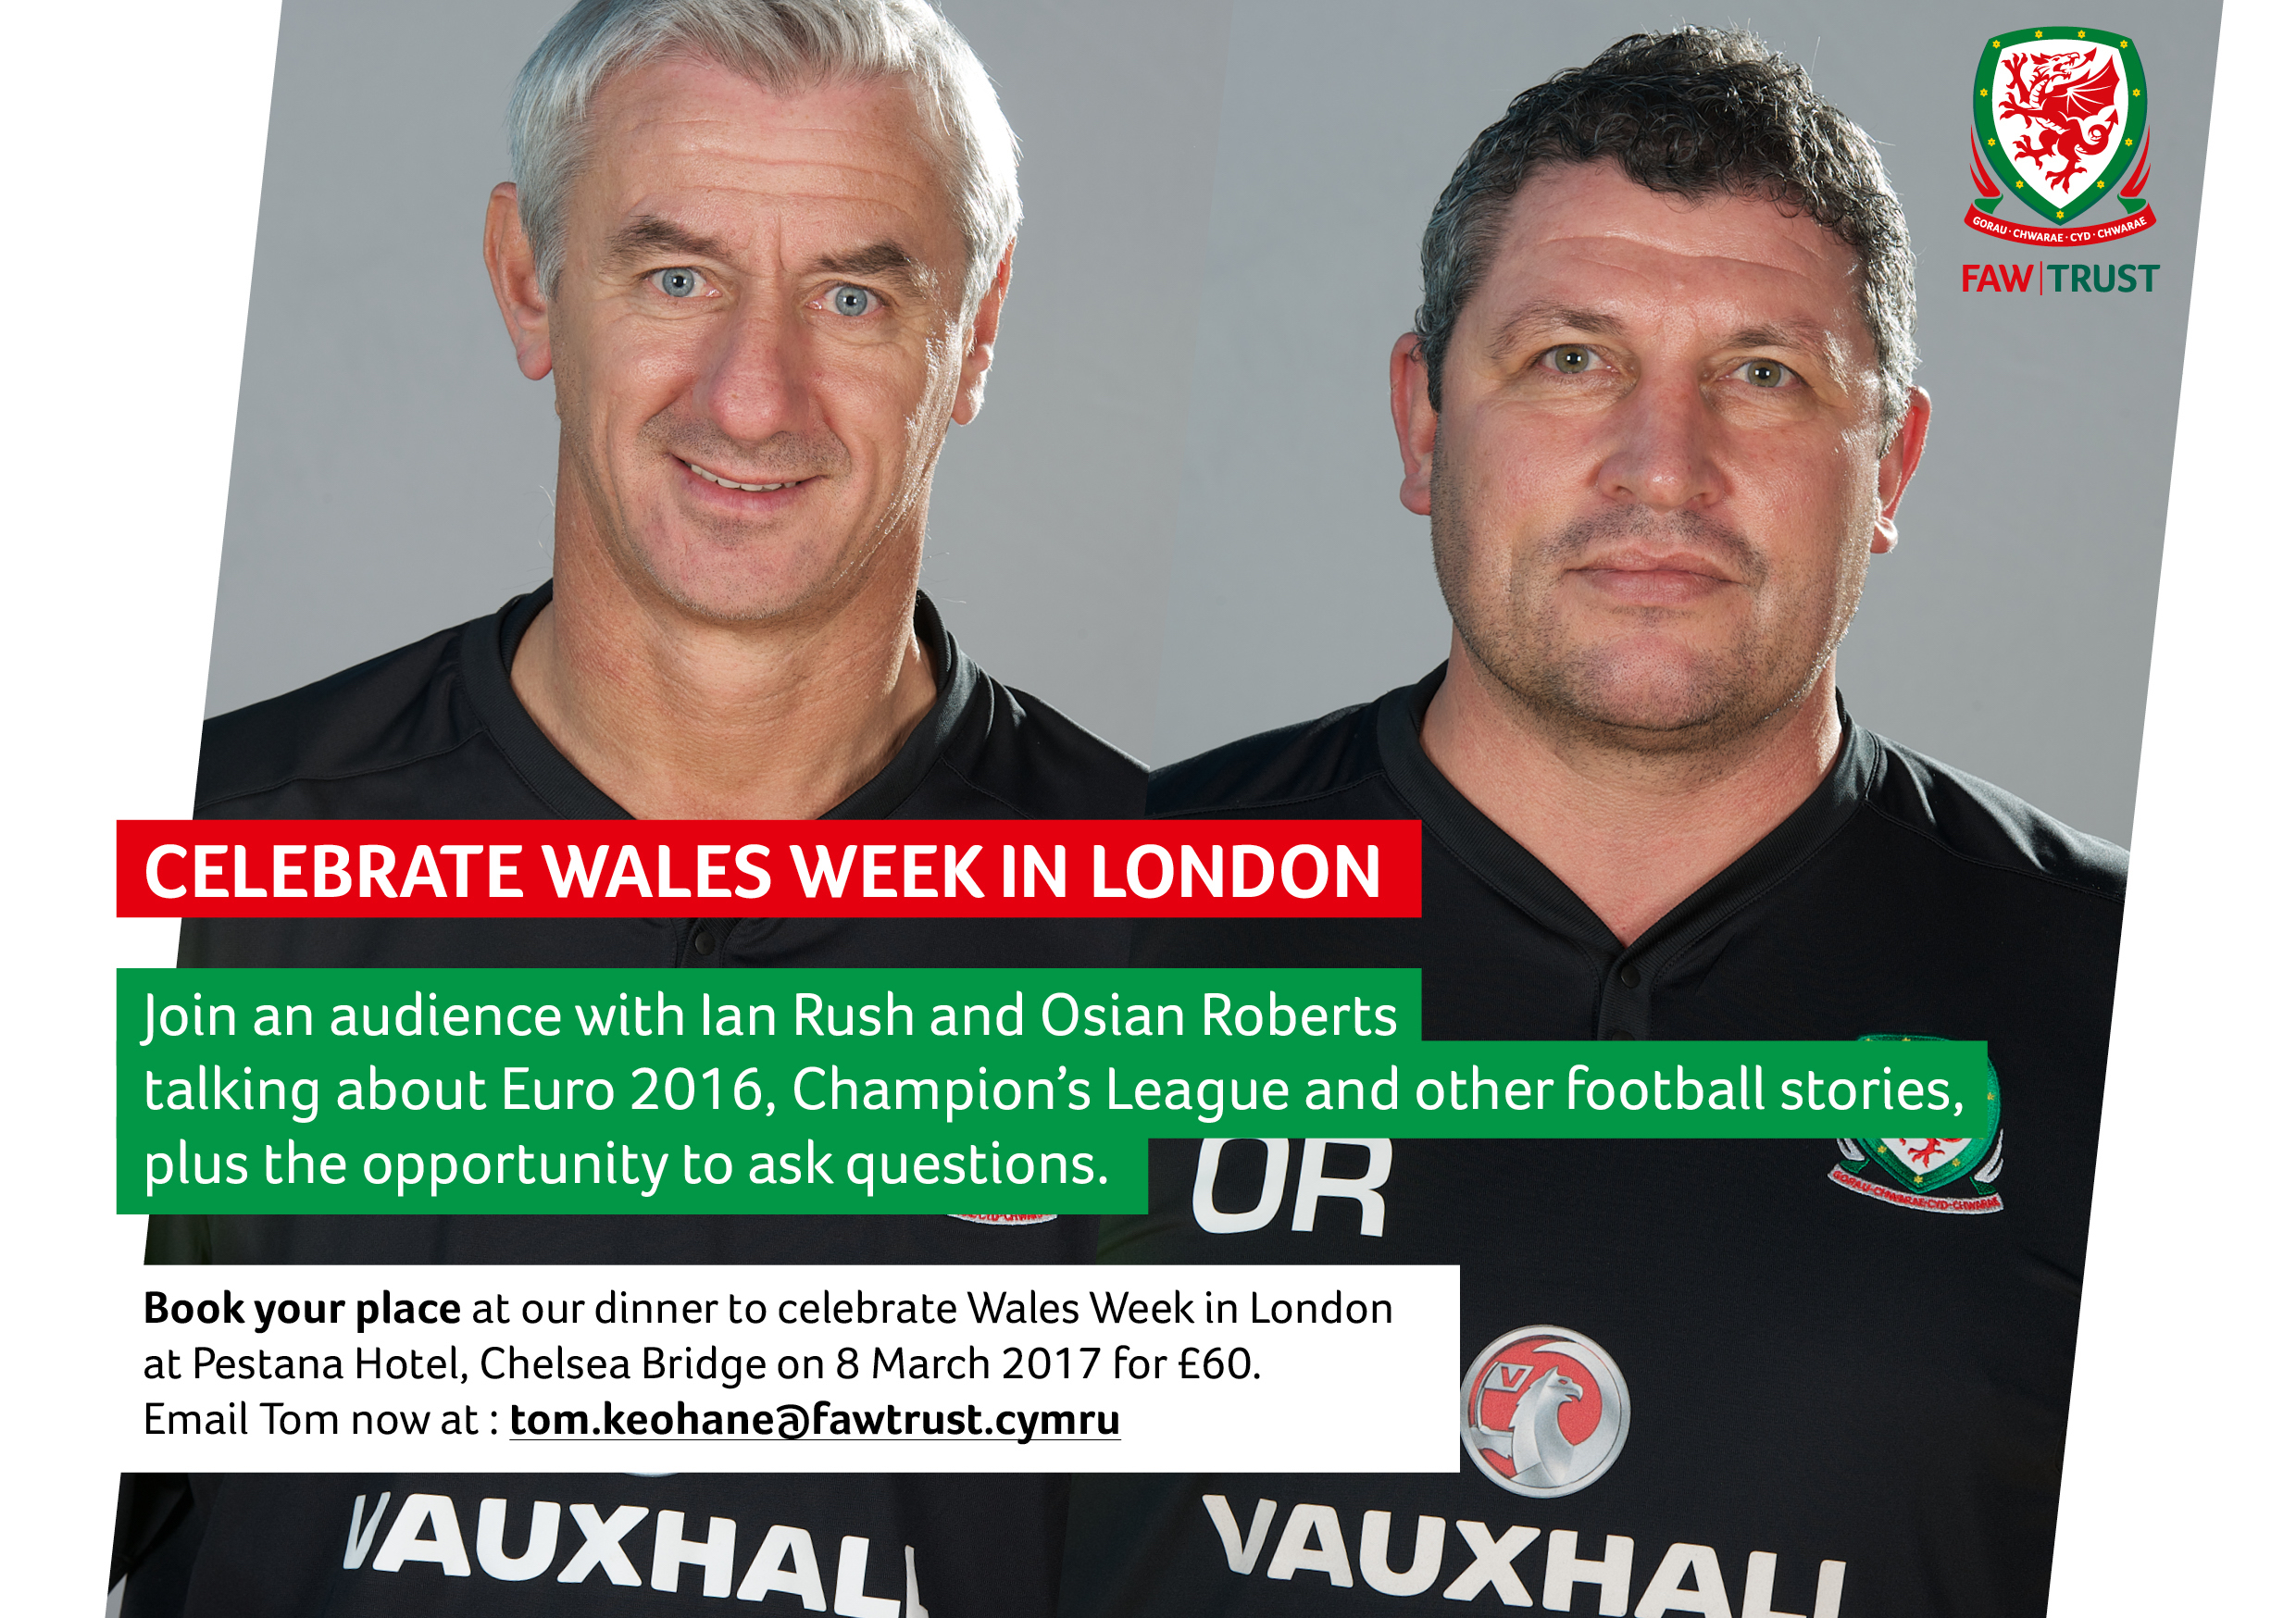 Ian Rush and Osian Roberts to celebrate Wales Week in London with Live Q&A